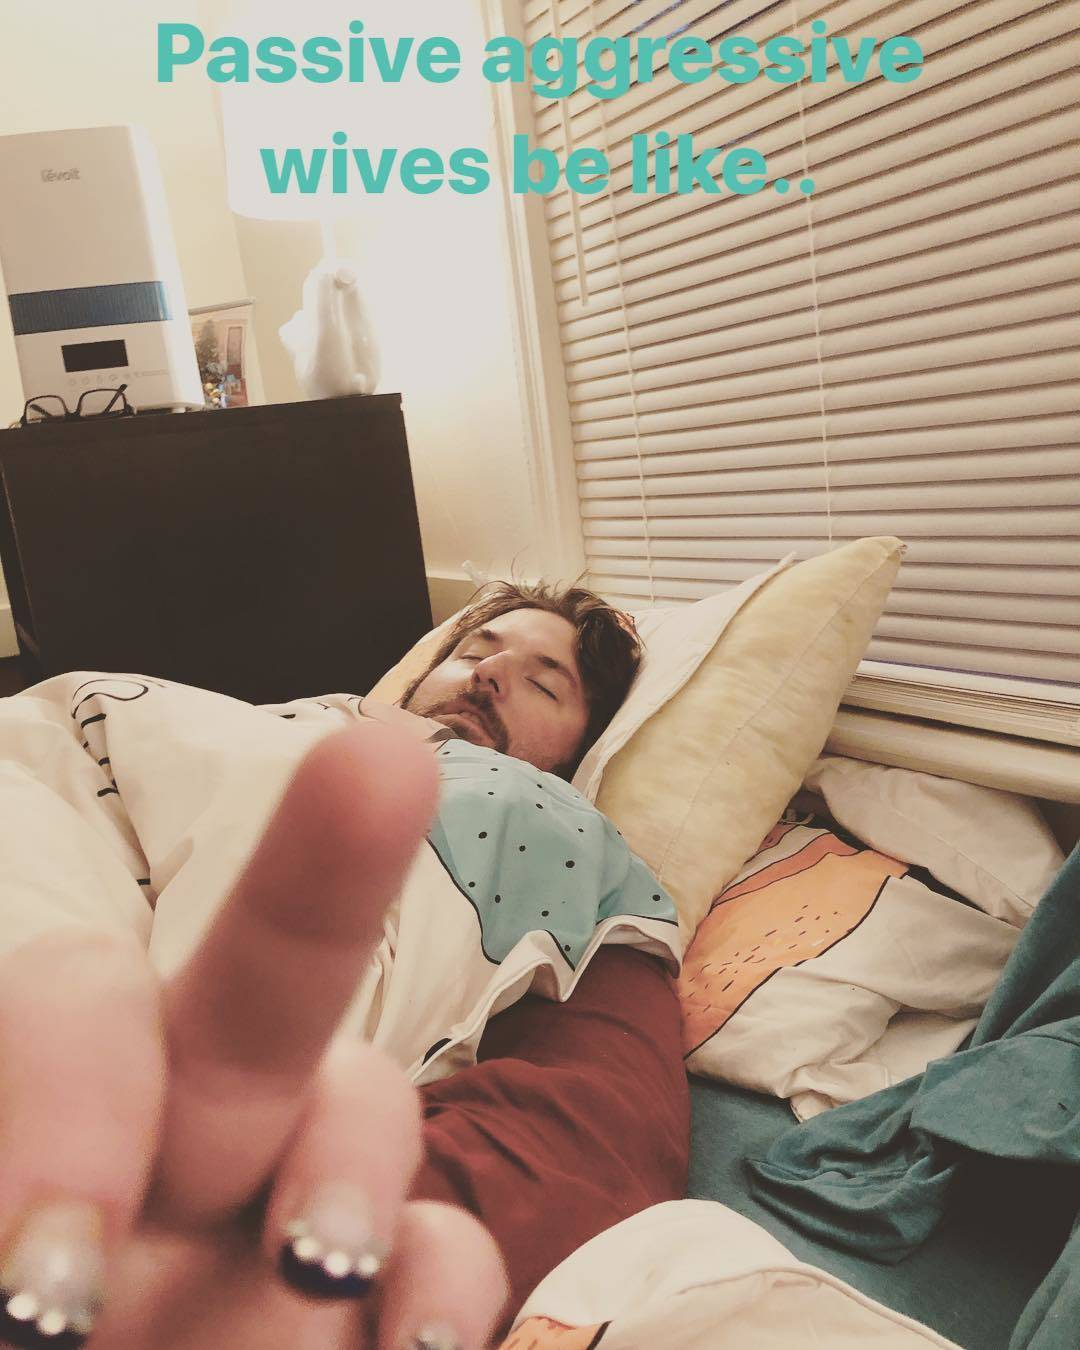 woman giving her husband the middle finger while he sleeps